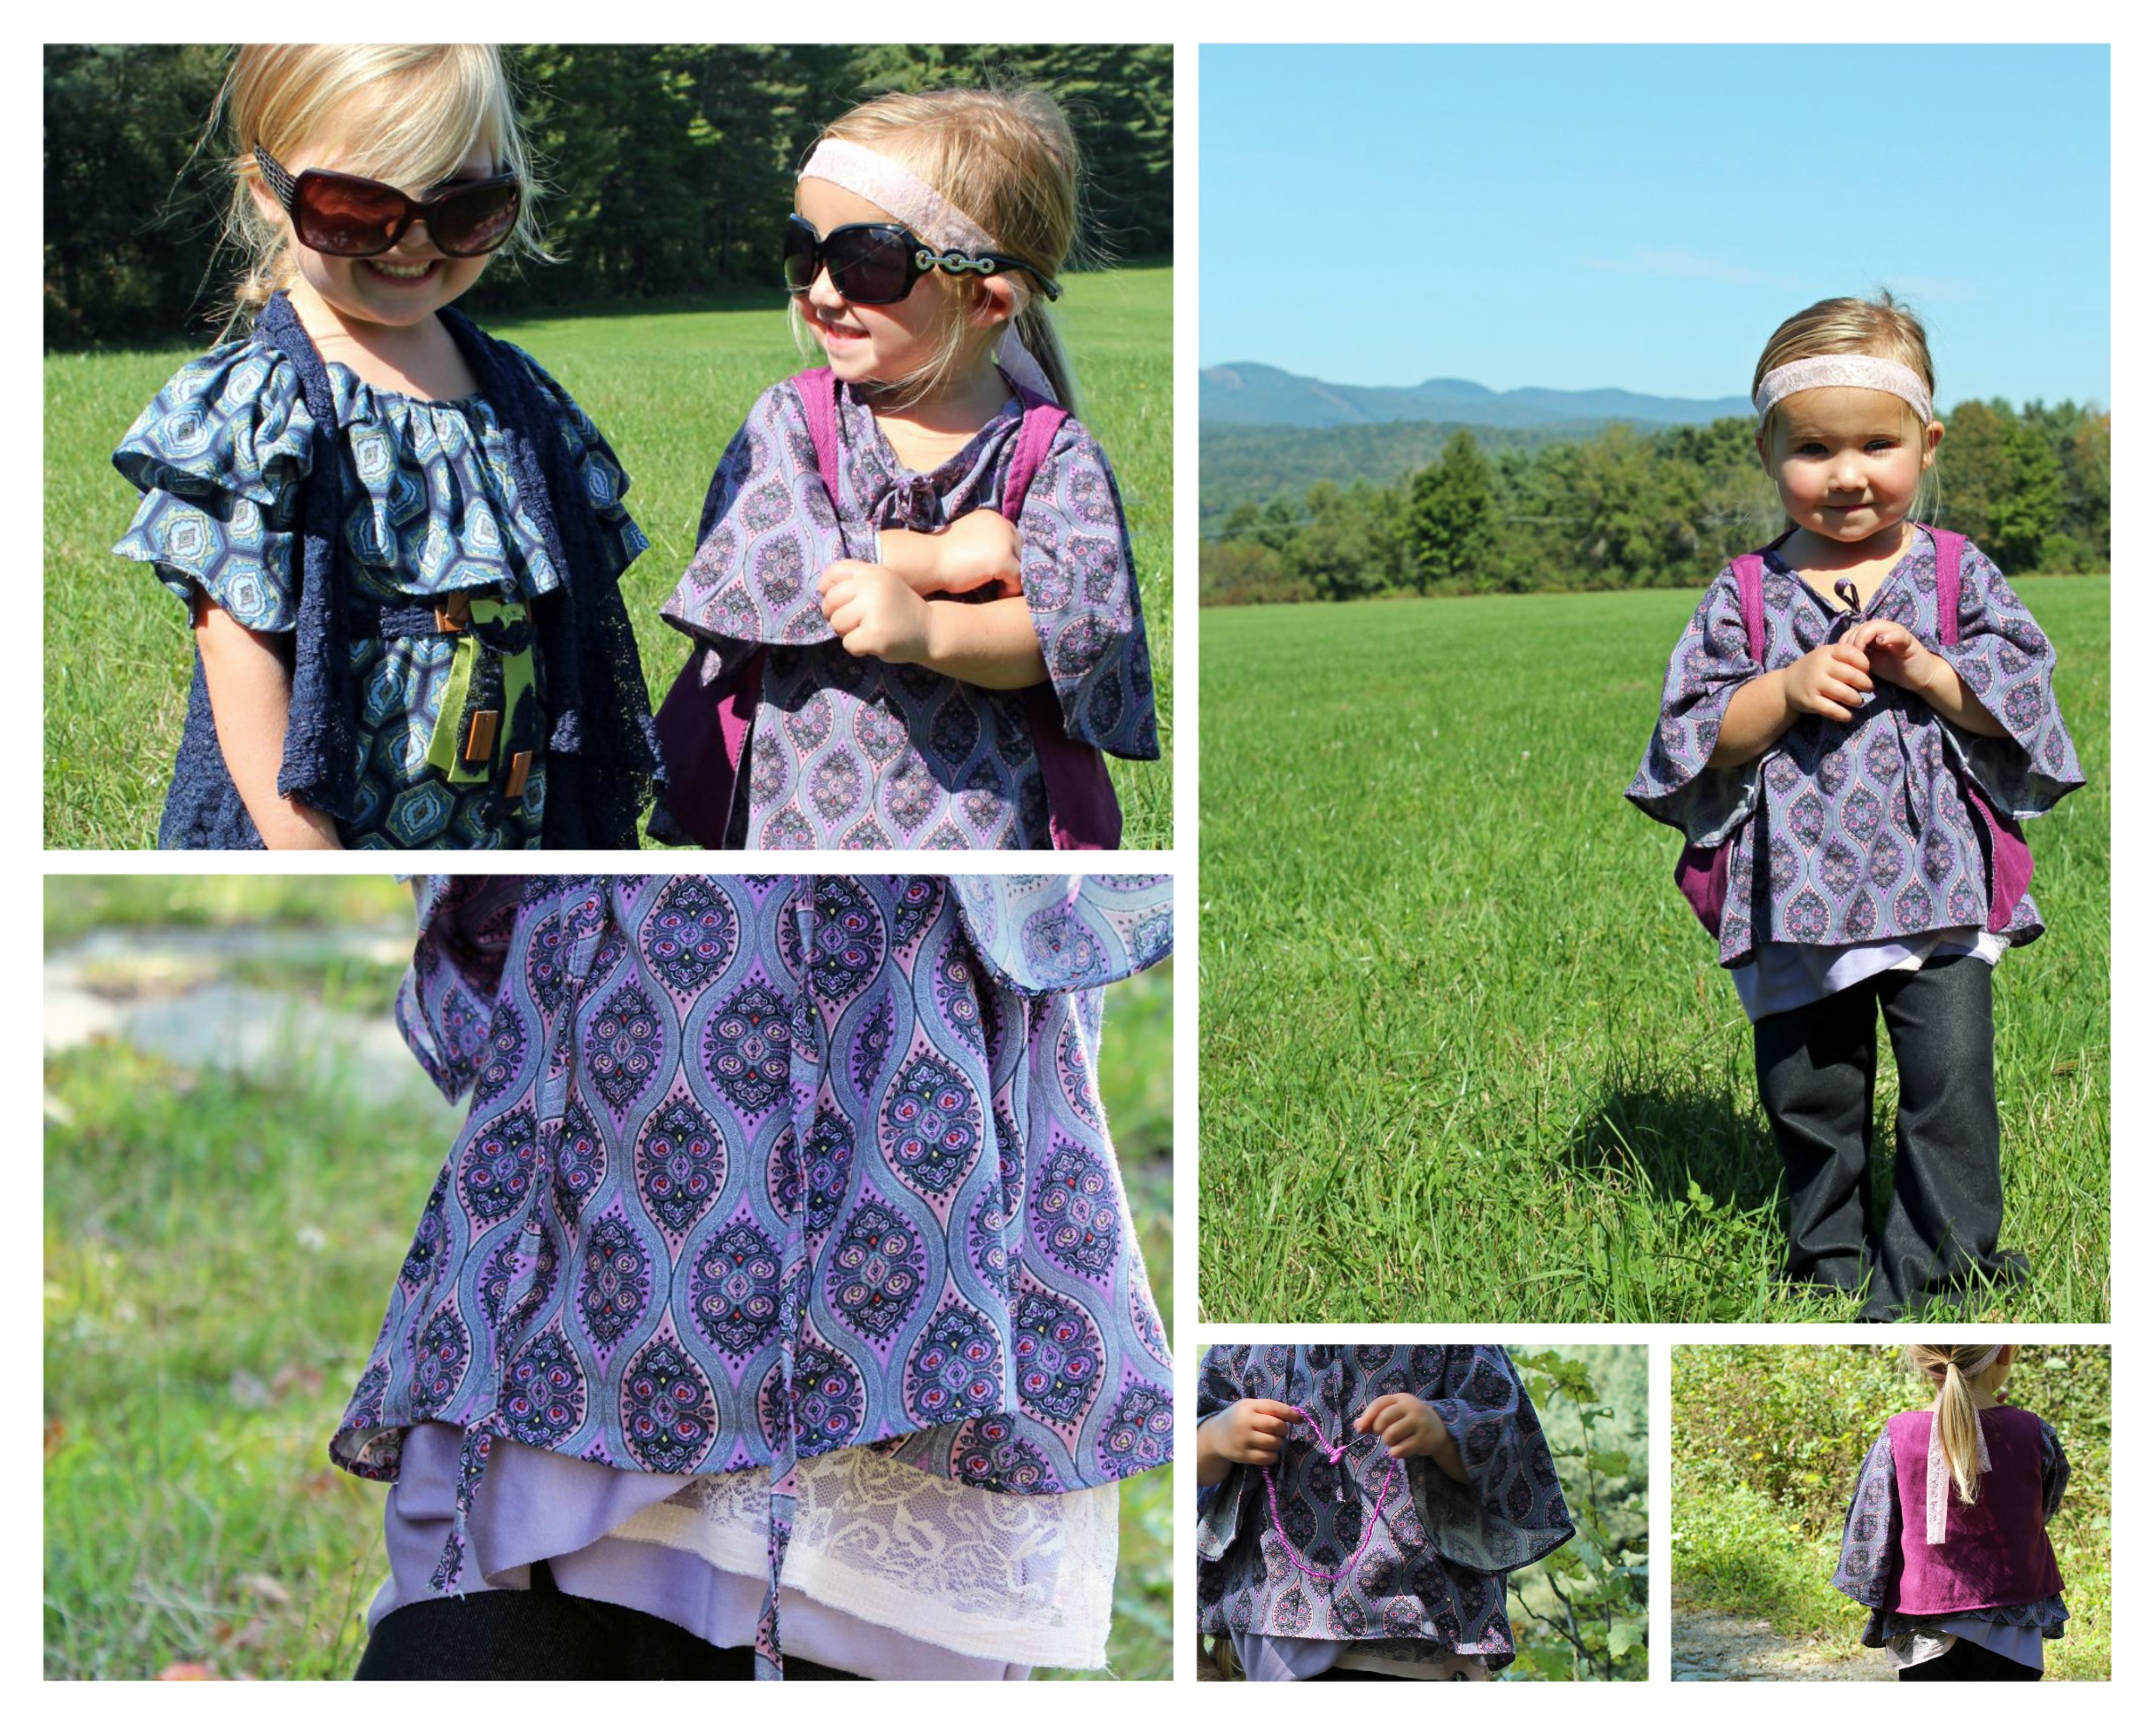 Boho Chic Kids Clothing have the boho chic style